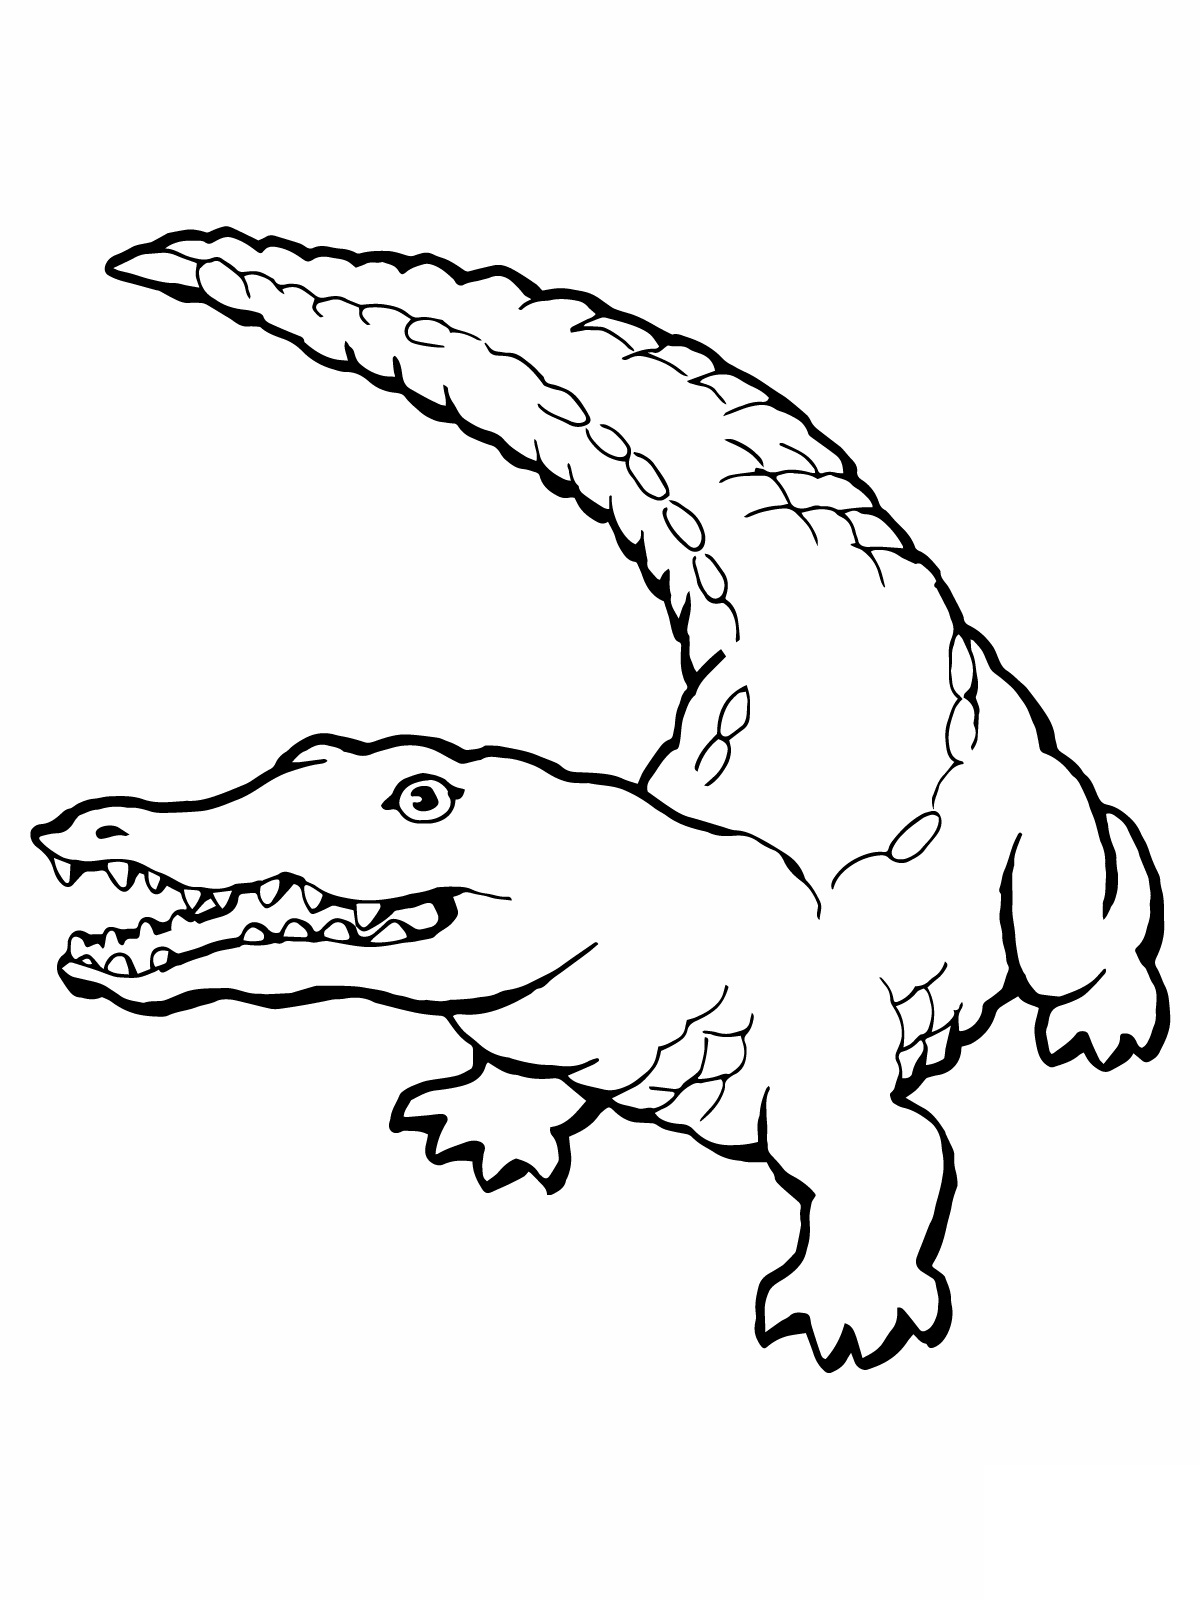 printable coloring pages crocodile - photo#3